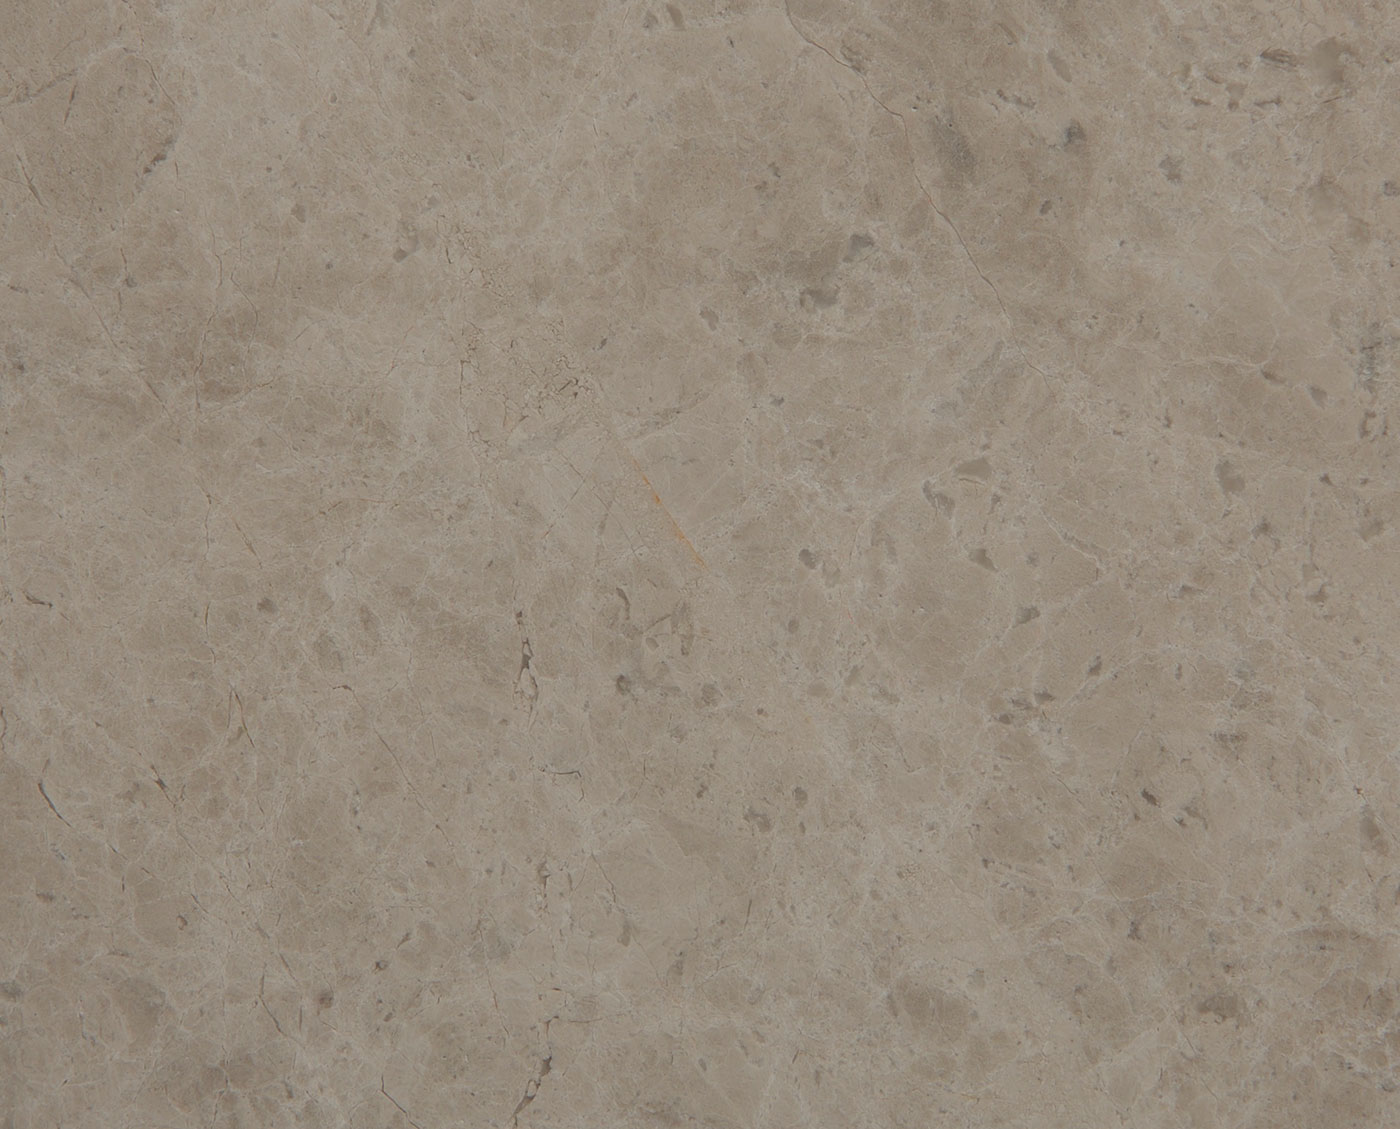 Grigio Perlato Light Honed tiles and slabs